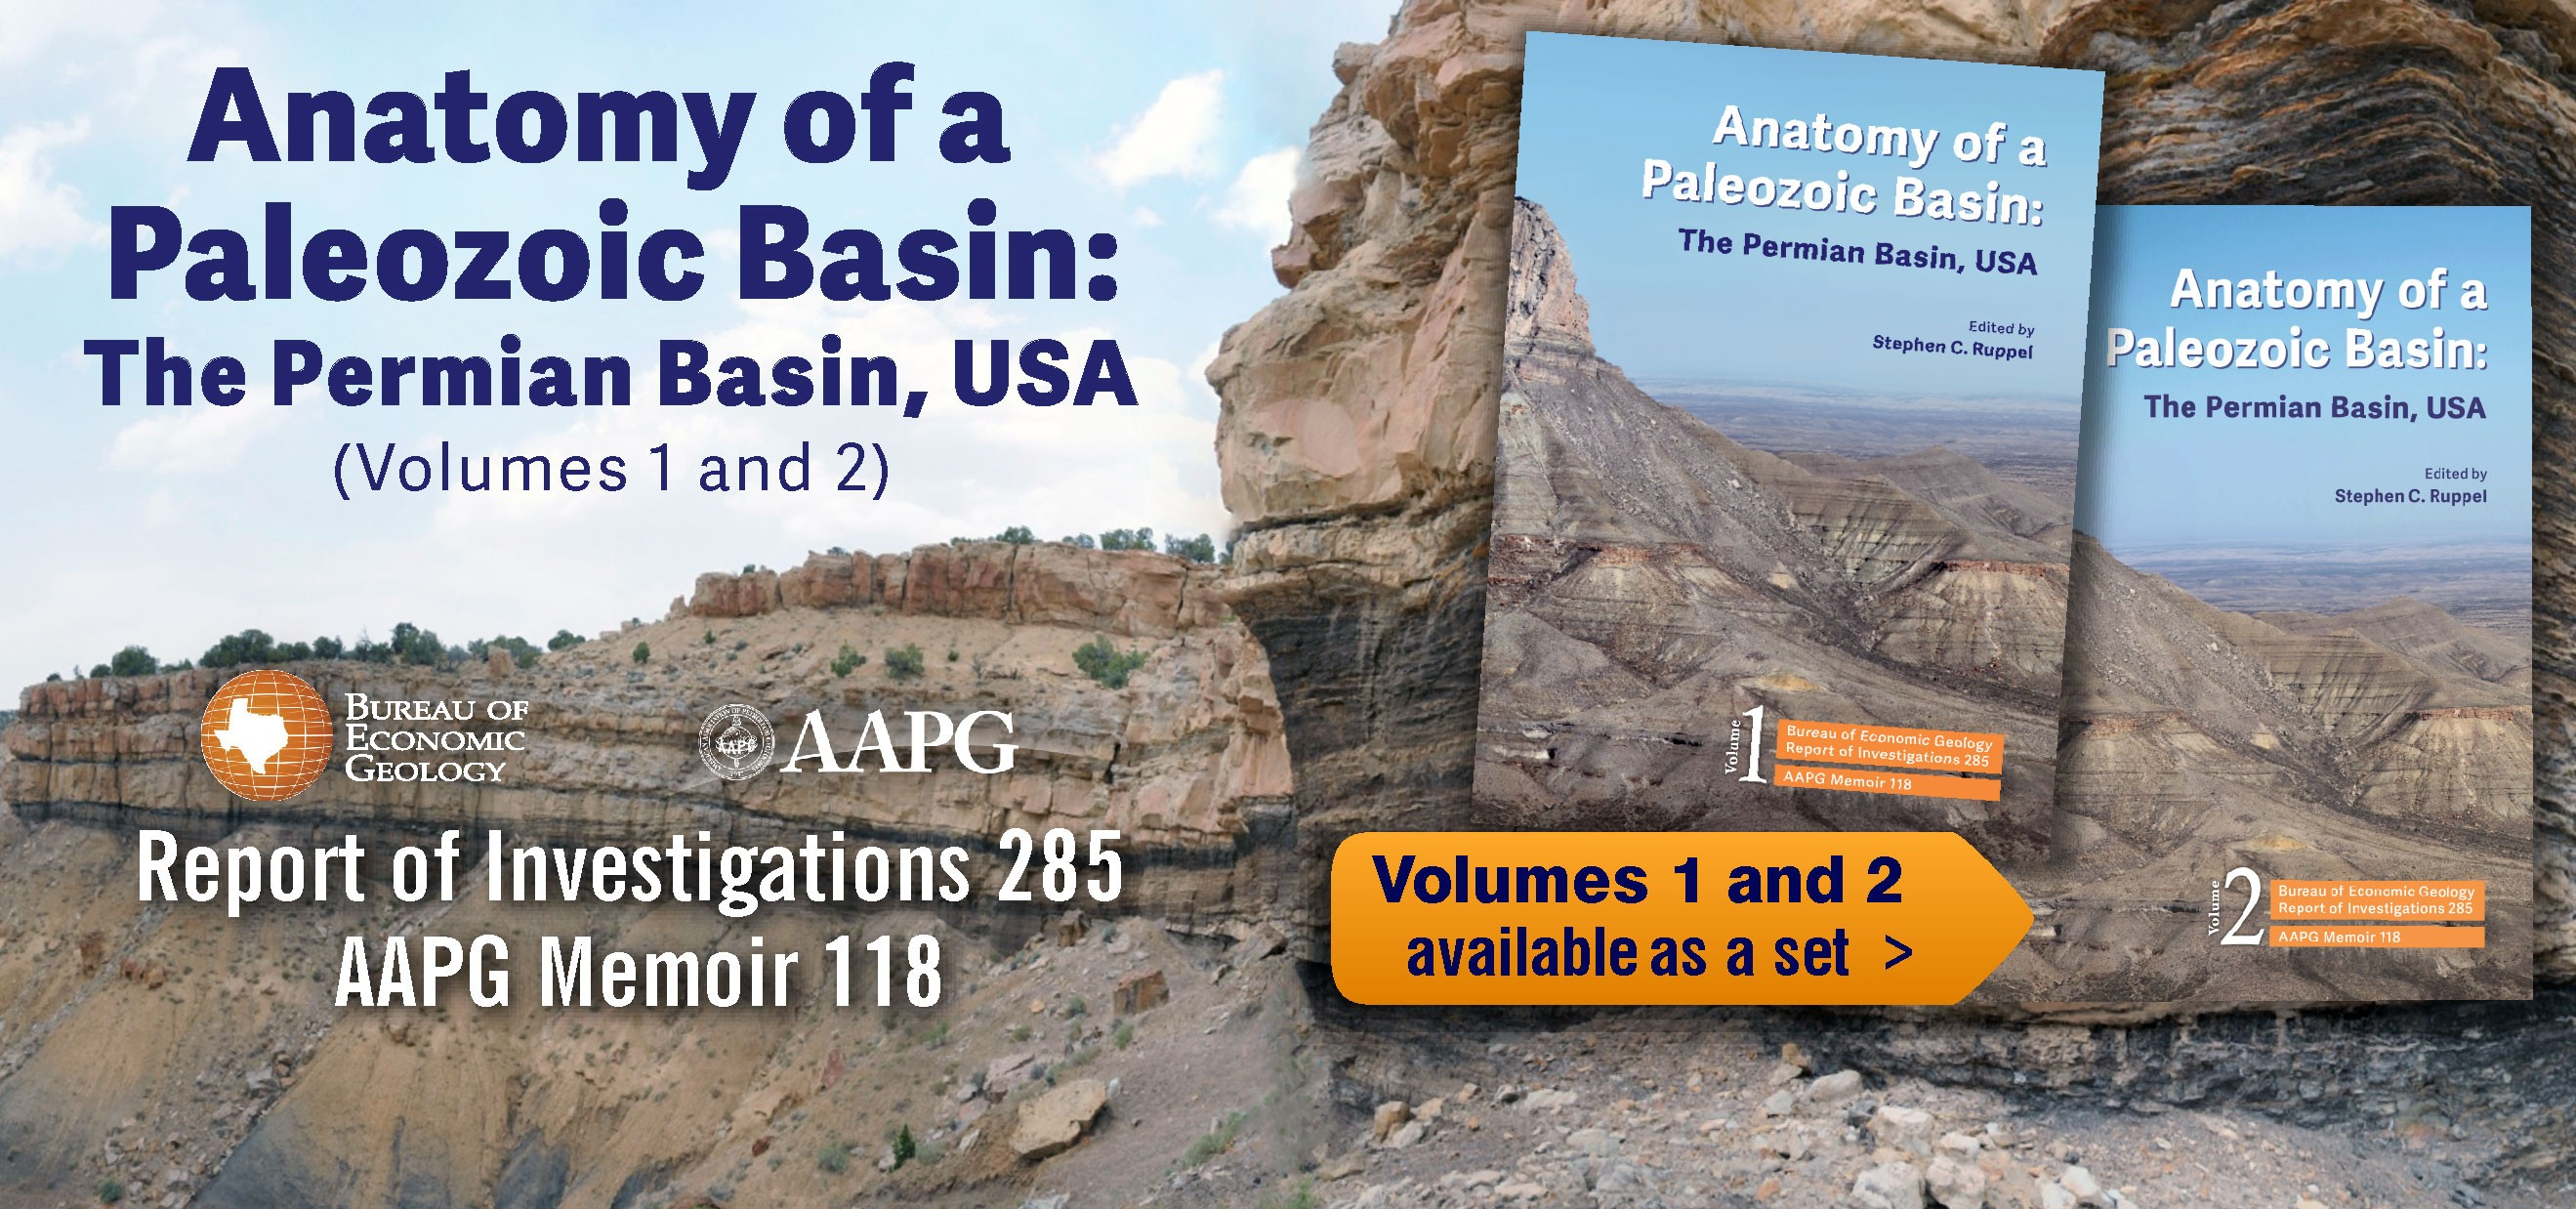 RI0285-2. Anatomy of a Paleozoic Basin: The Permian Basin, USA, Volume 2